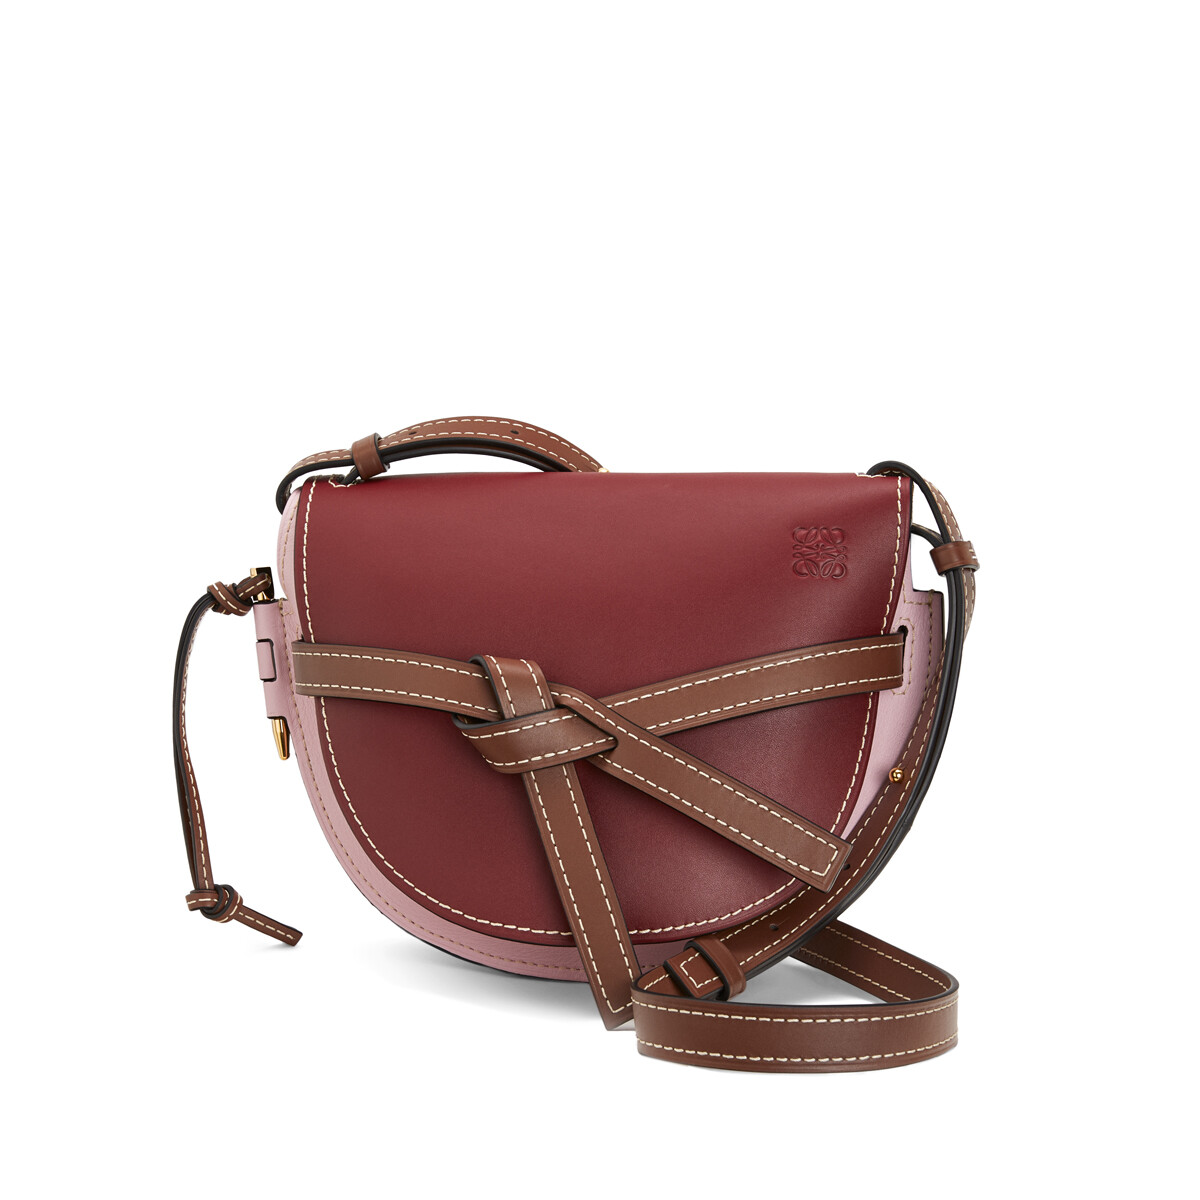 Gate Small Bag 				 				 				 				 				 				 				Wine/Pastel Pink by Loewe